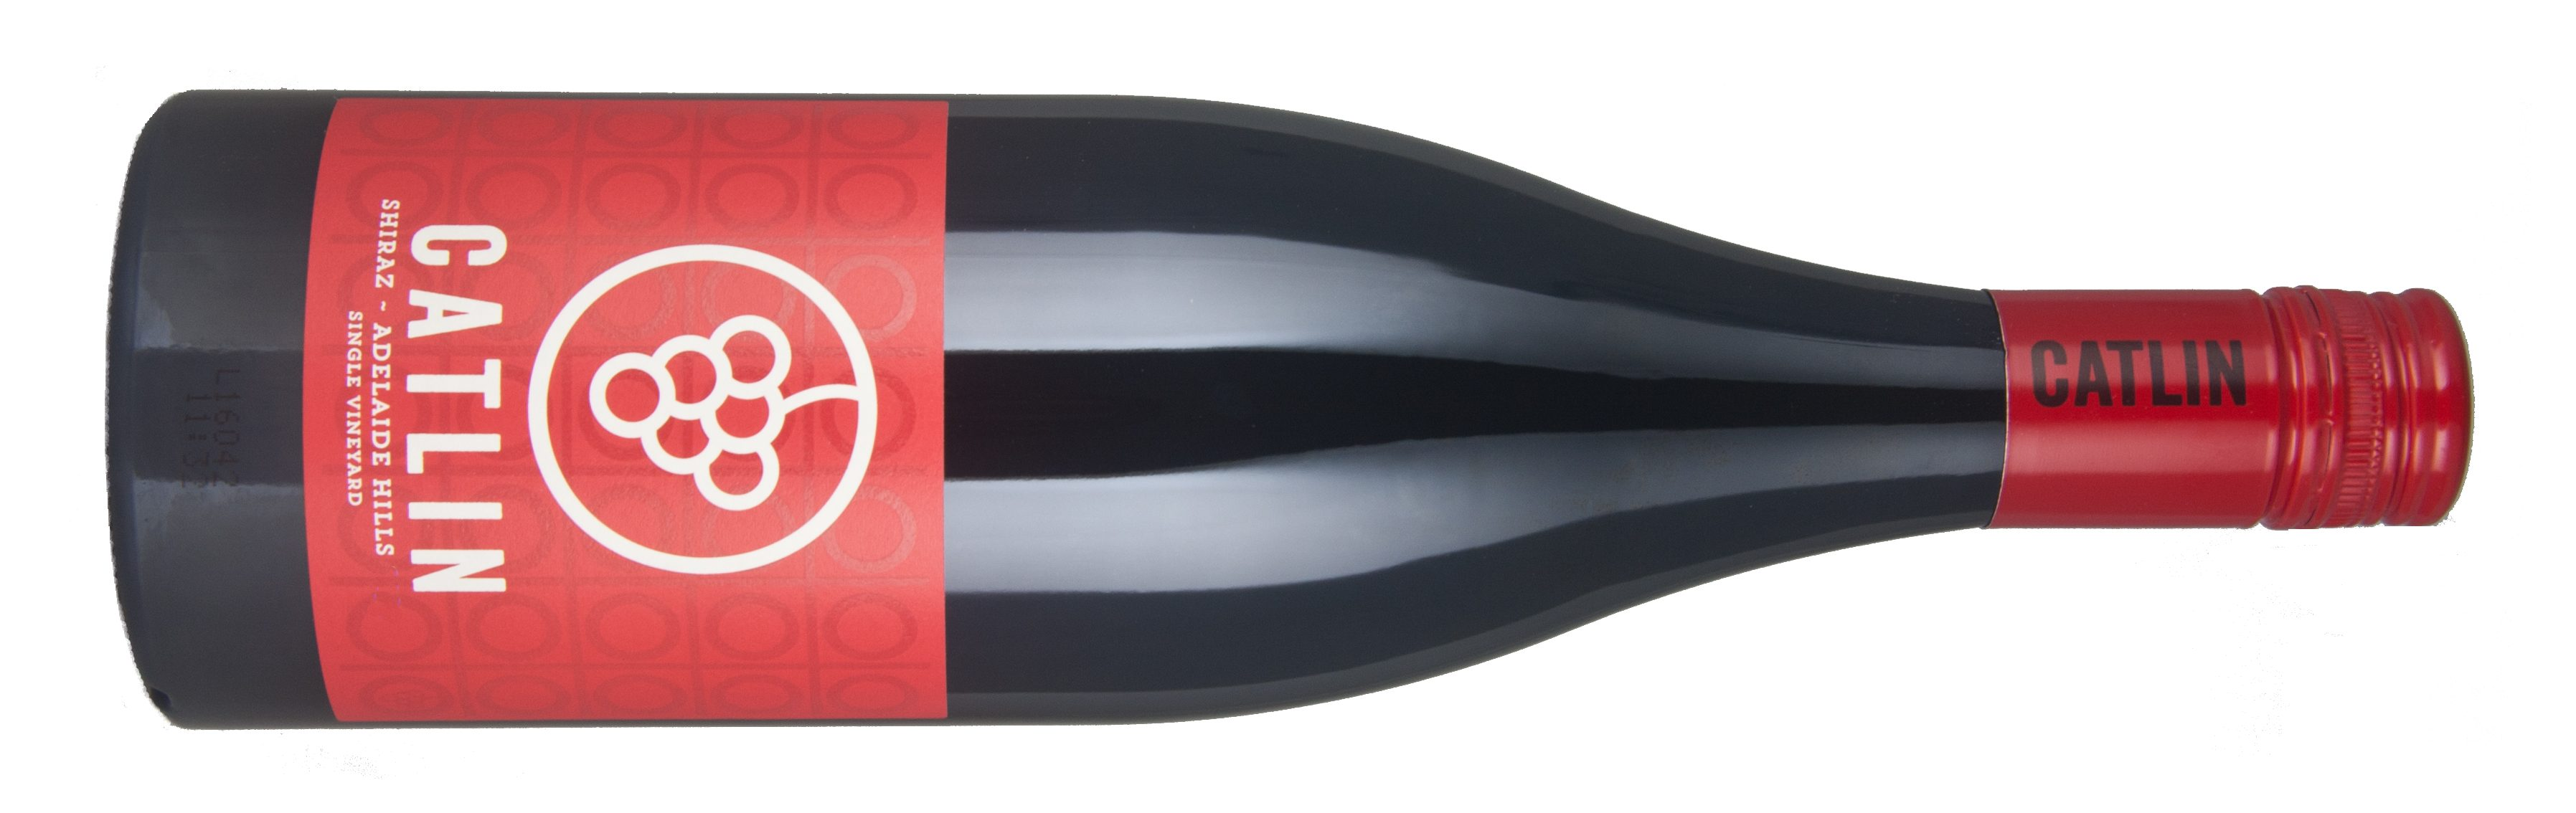 2016 Catlin Glenco Red Label Shiraz